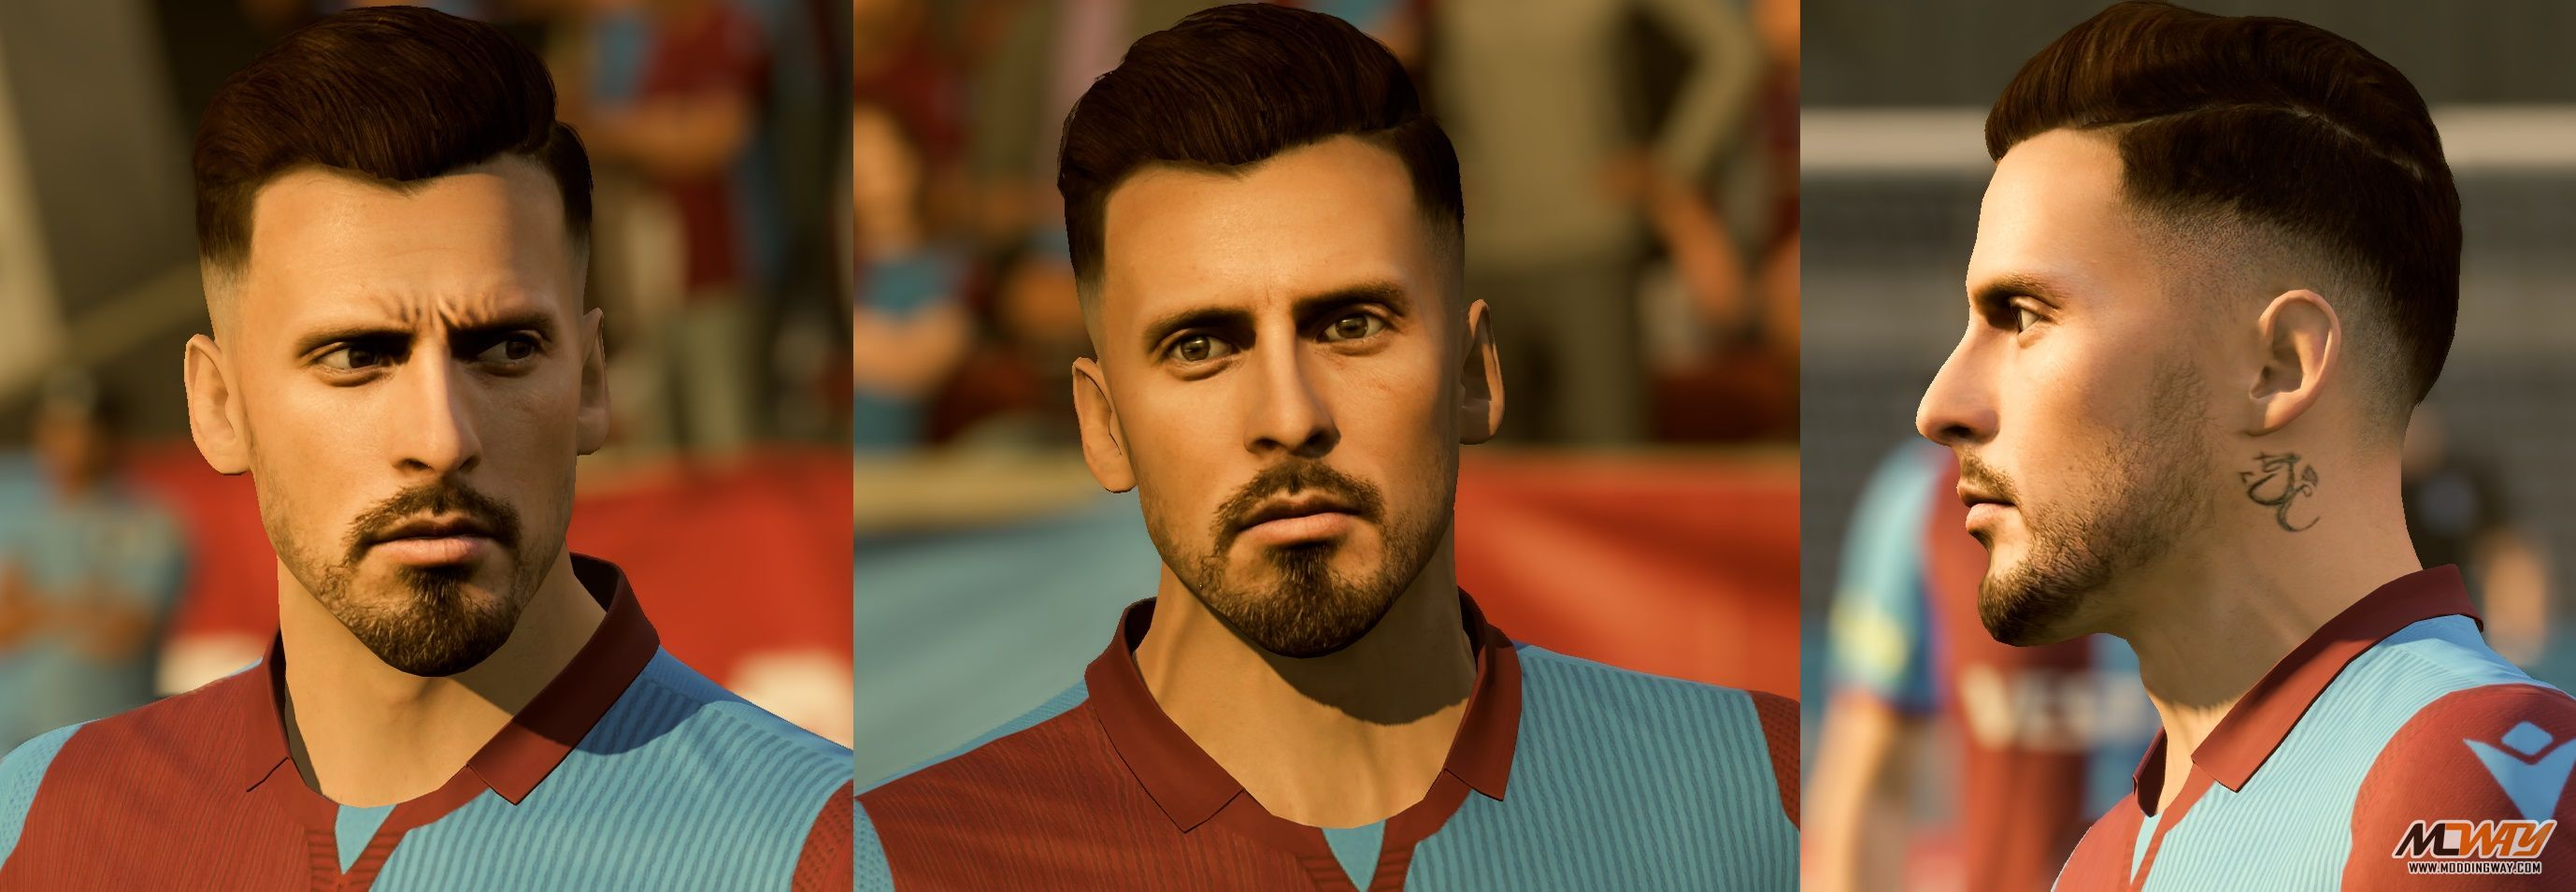 José Sosa Face - FIFA 20 at ModdingWay